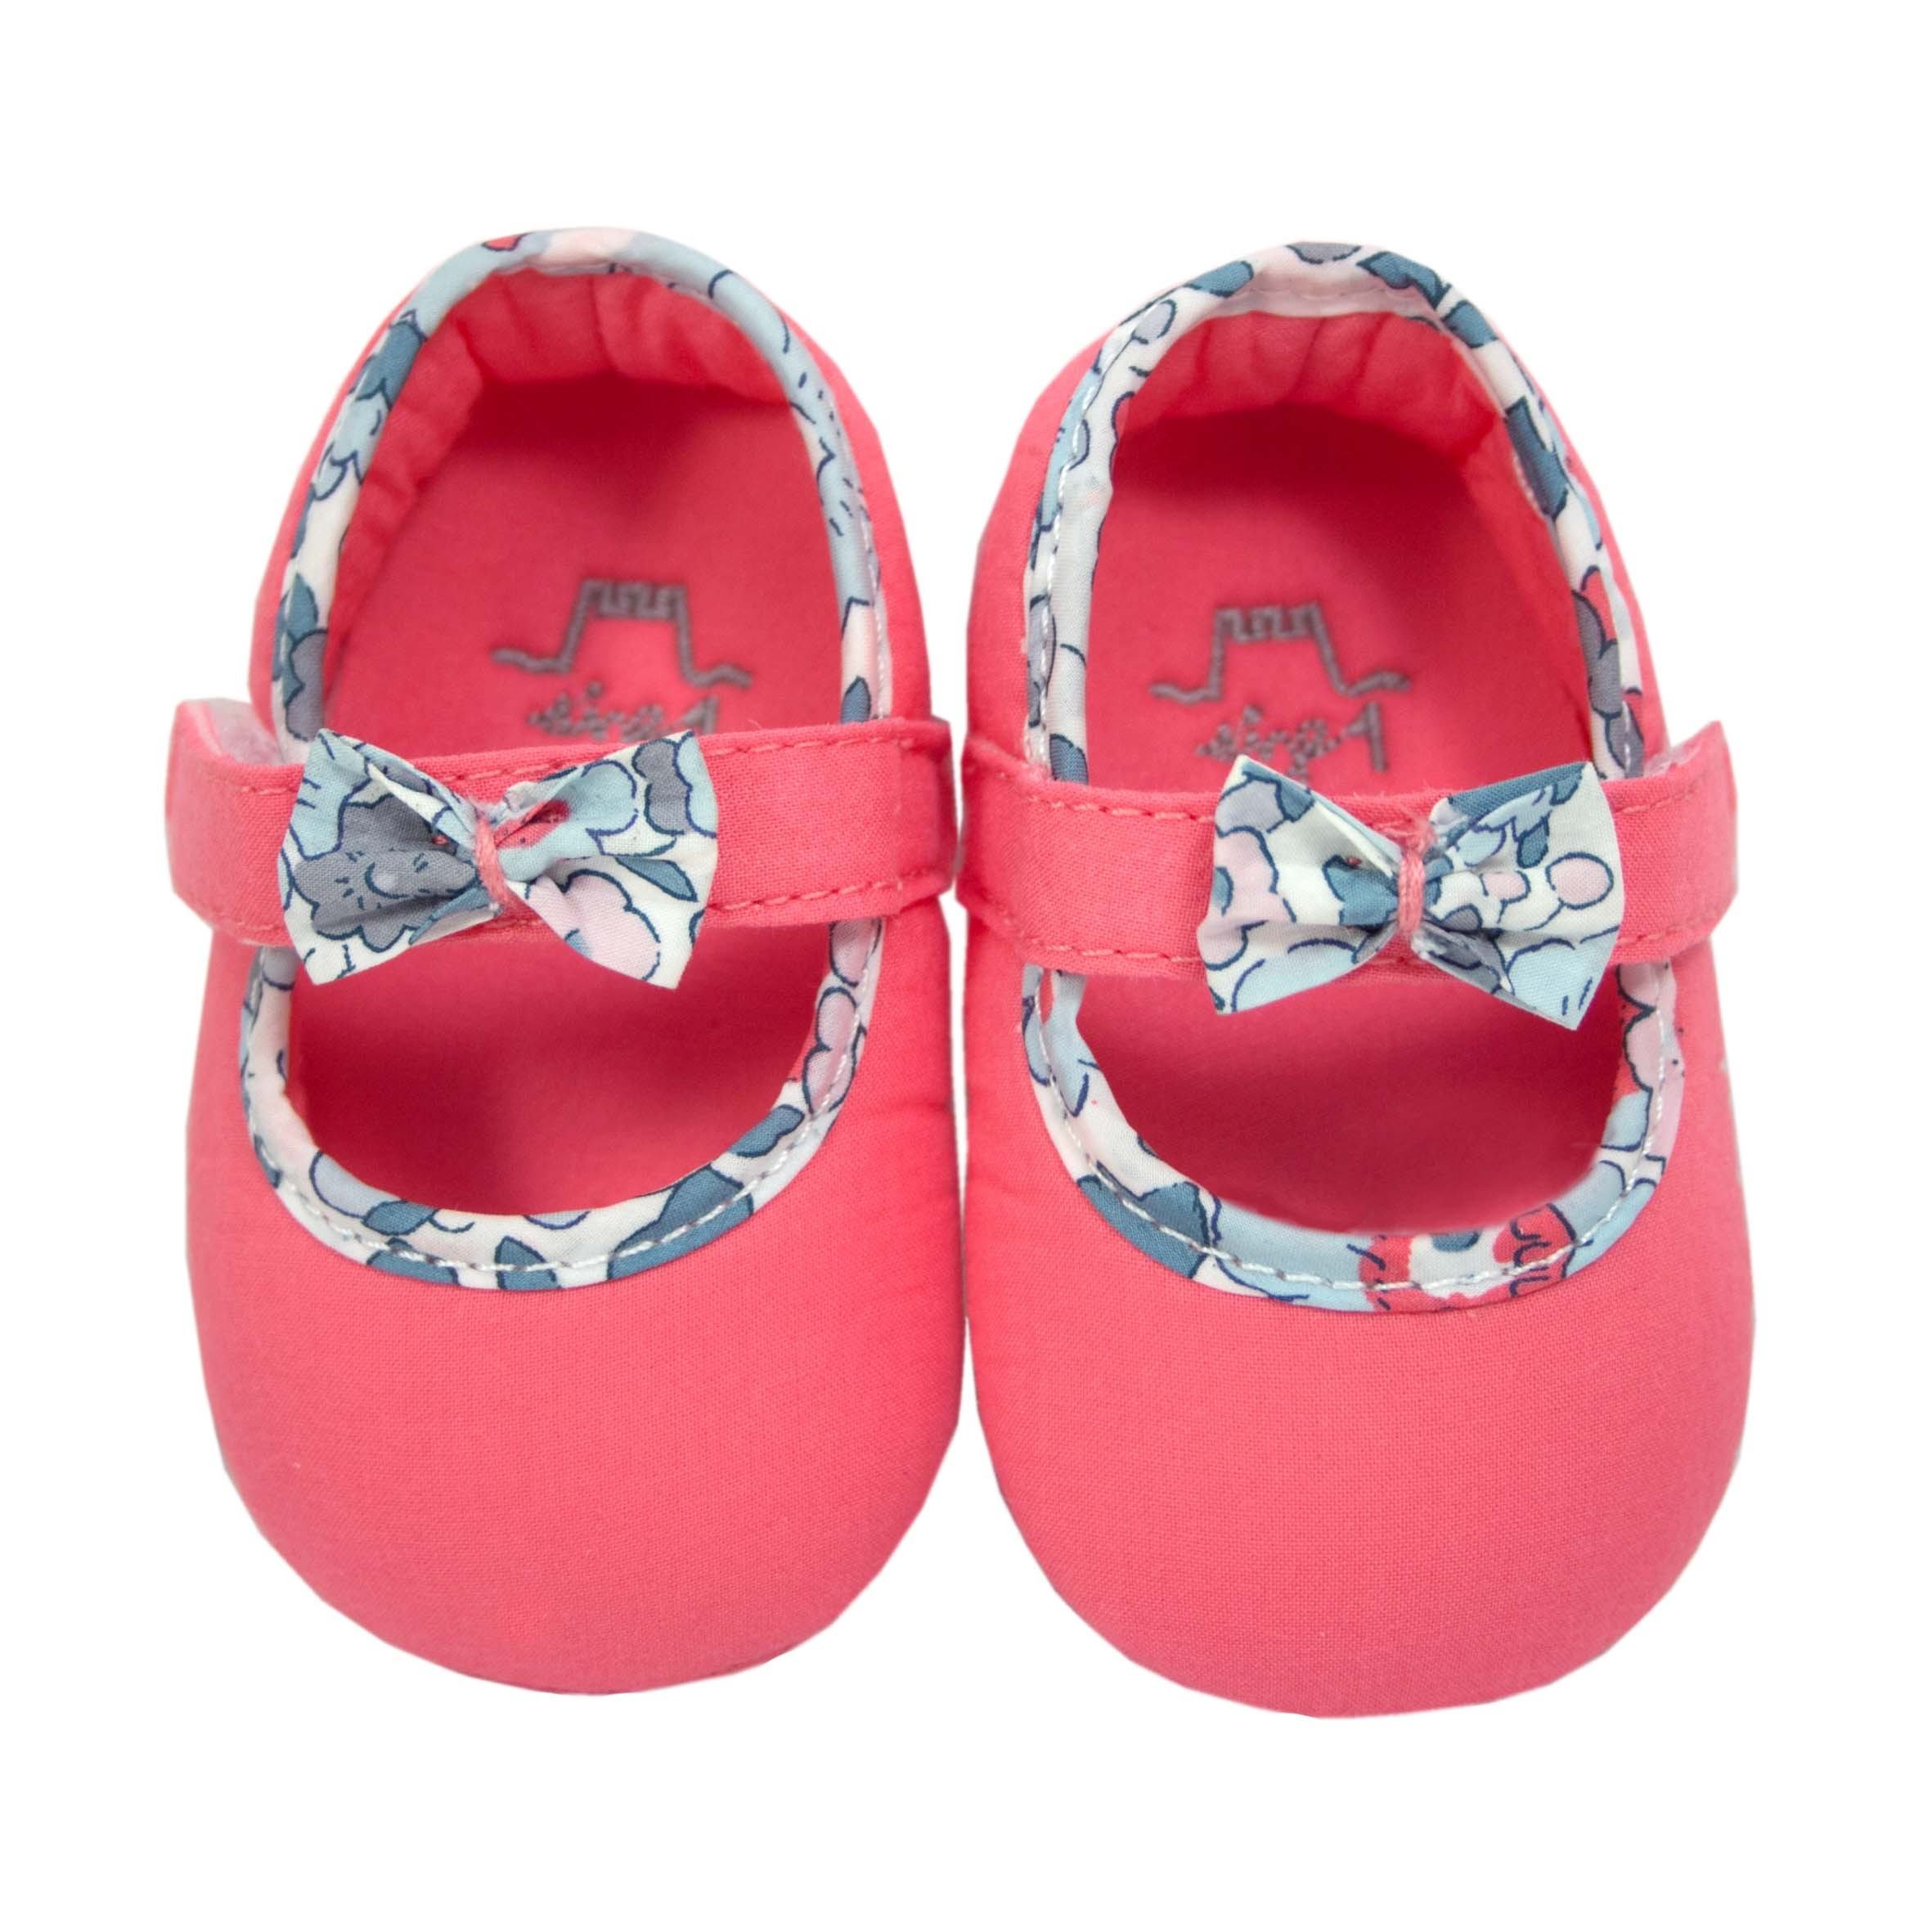 Baby Girl Shoes - Chateau de sable